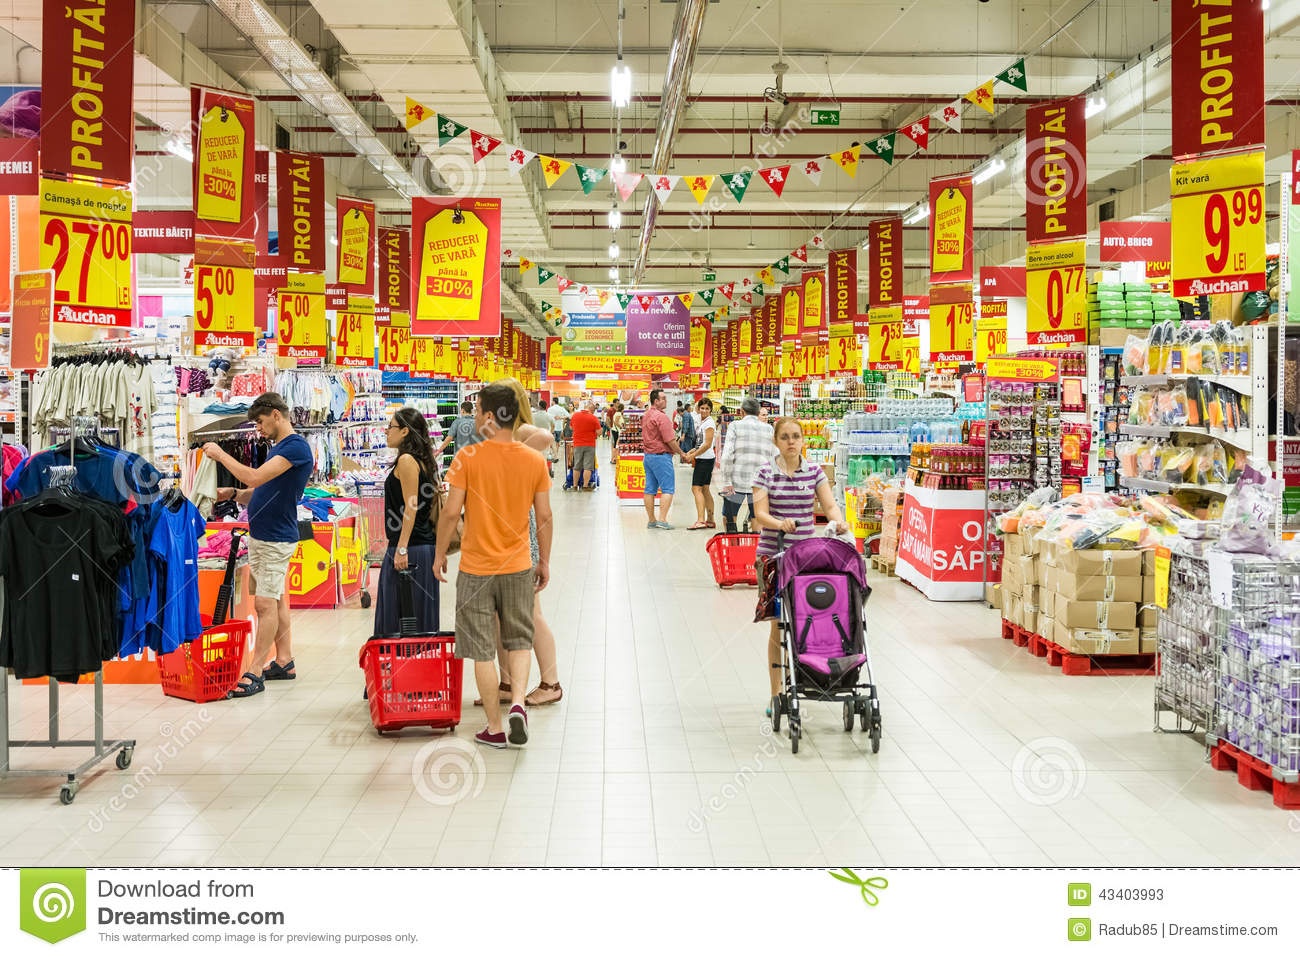 people-shopping-supermarket-store-aisle-bucharest-romania-august-43403993.jpg